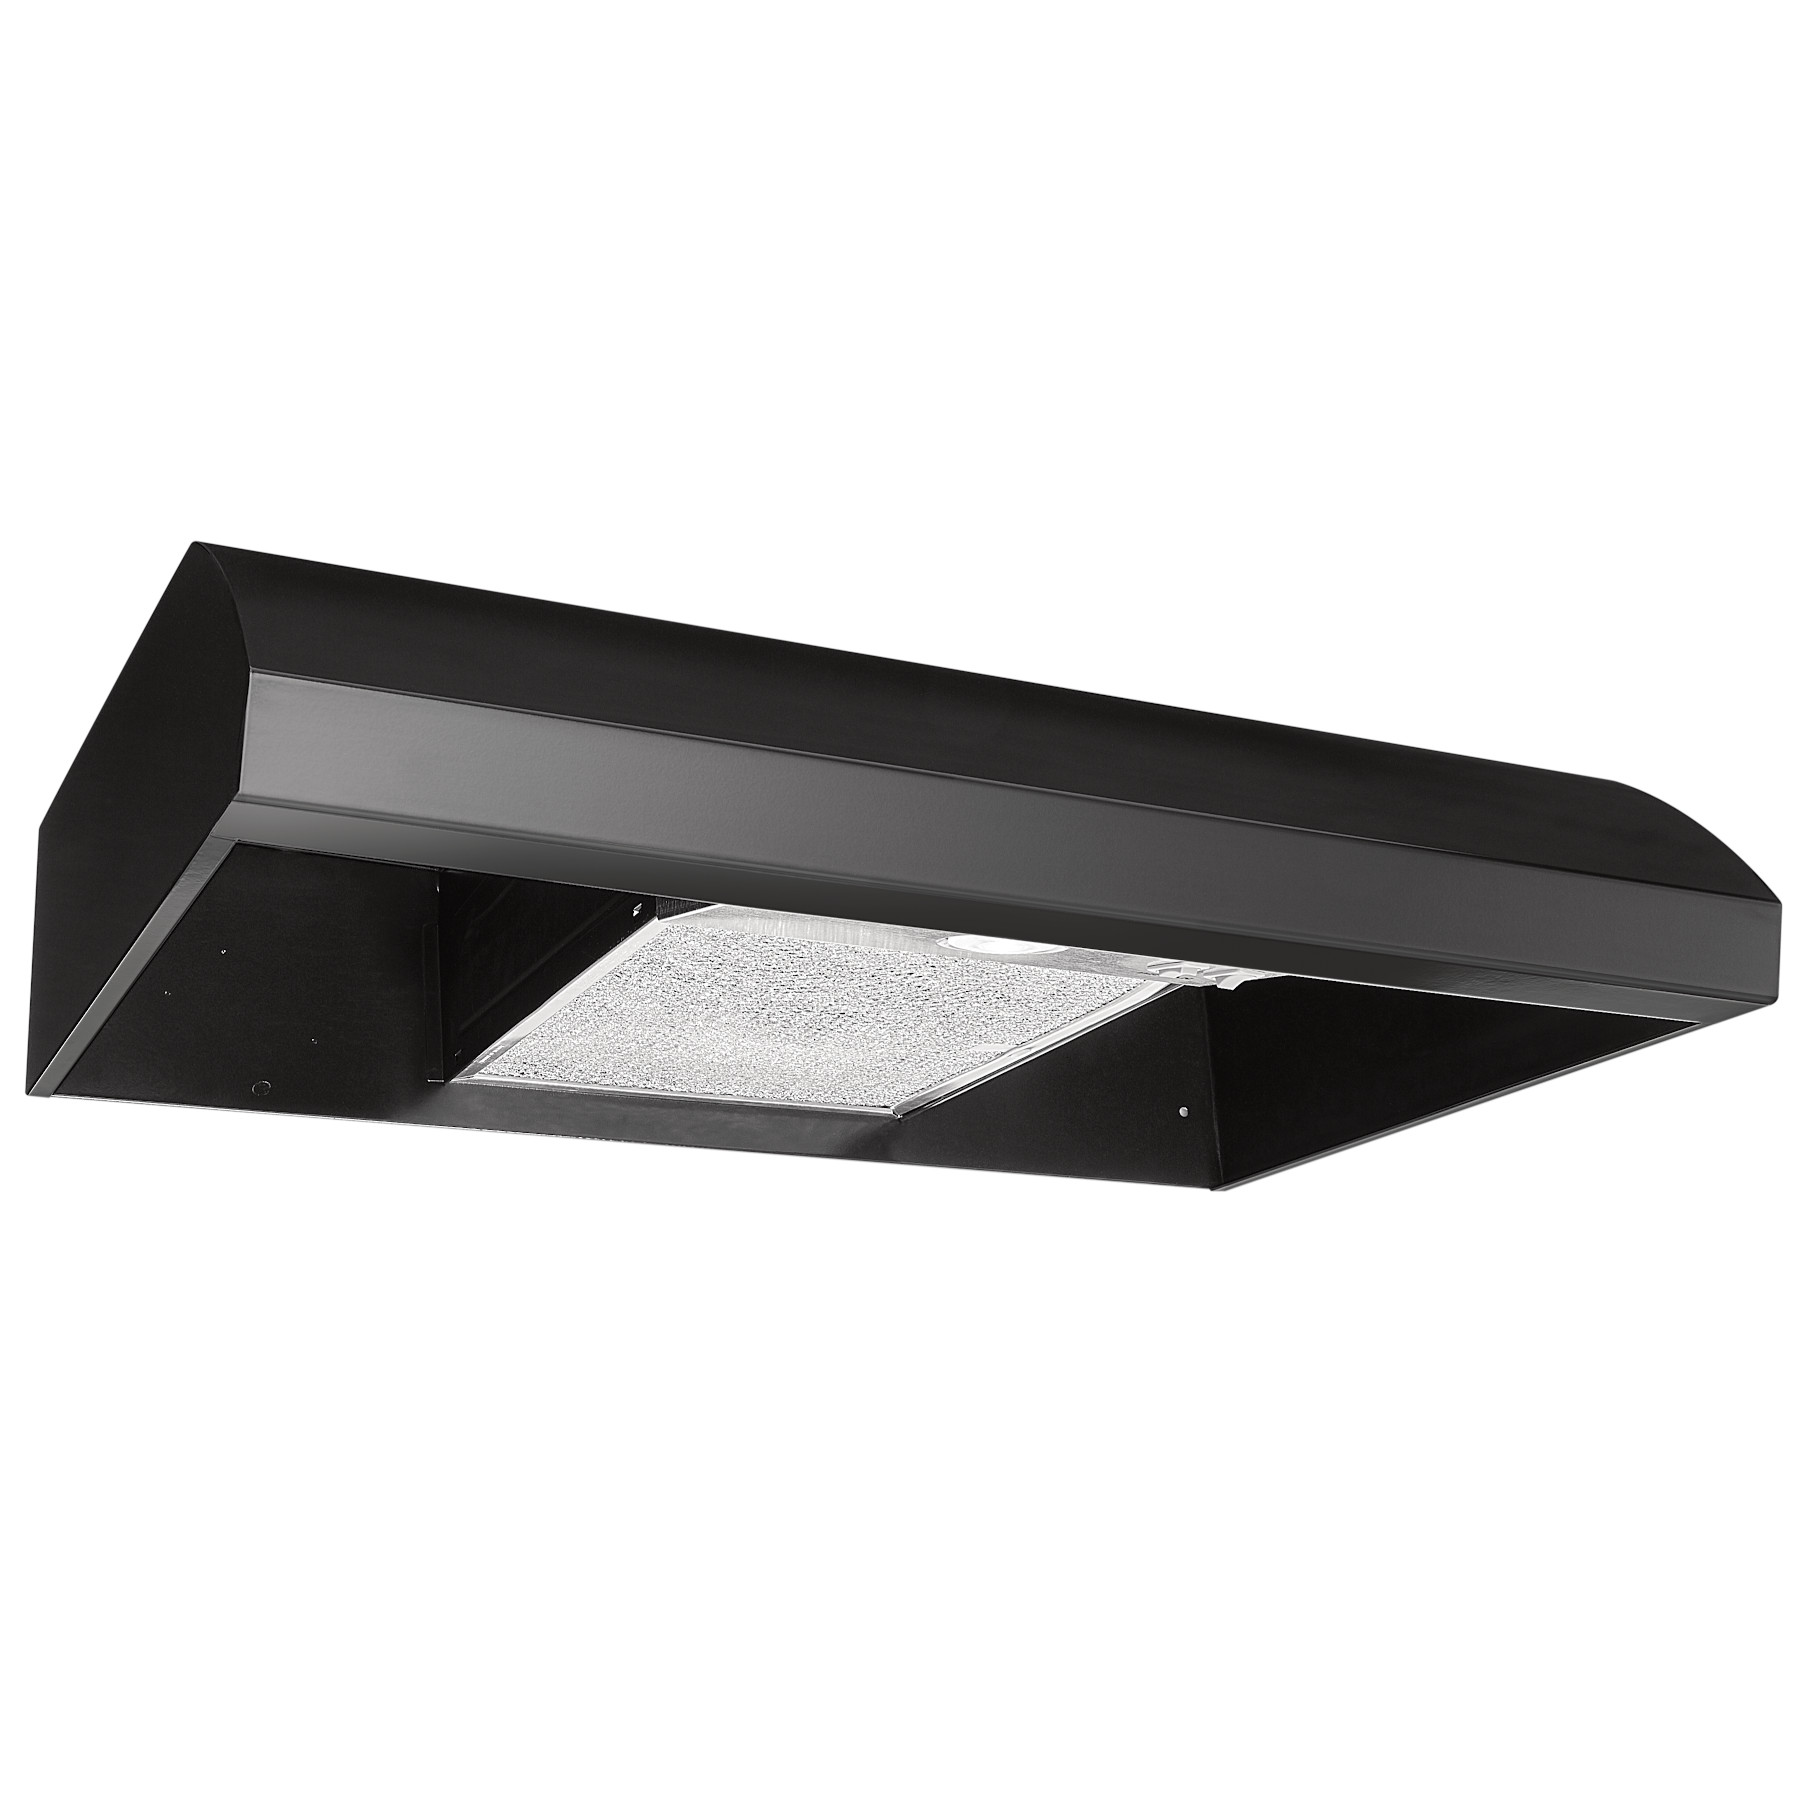 Broan® 30-Inch 4-Way Convertible Under-Cabinet Range Hood, 270 Max CFM, Black